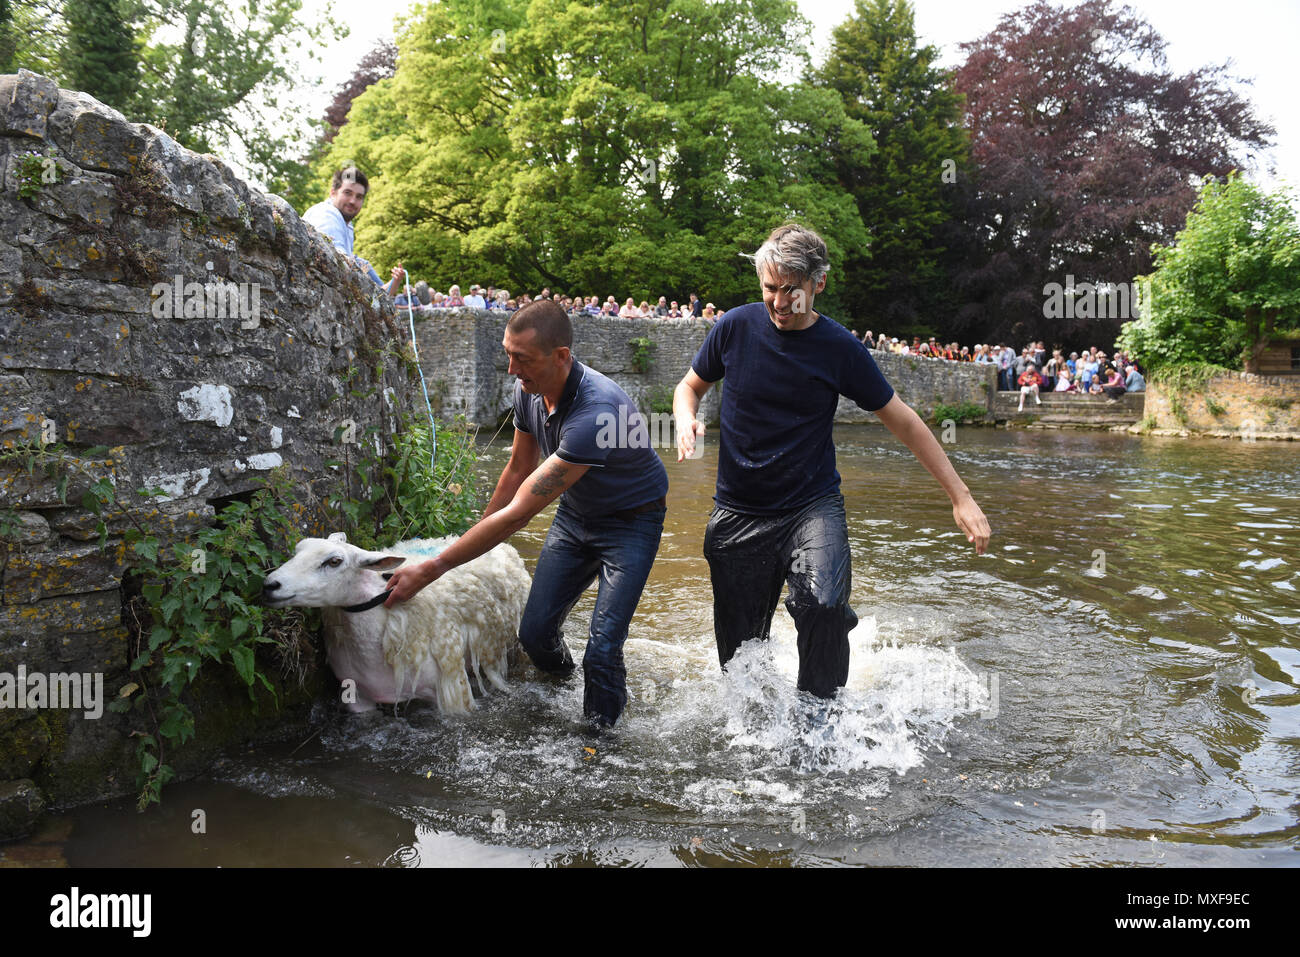 Ashford in the Water, Derbyshire, Uk Farmers dipping their sheep in the River Wye at Sheep Wash Bridge in Ashford-in-the-Water during the villages 'We - Stock Image